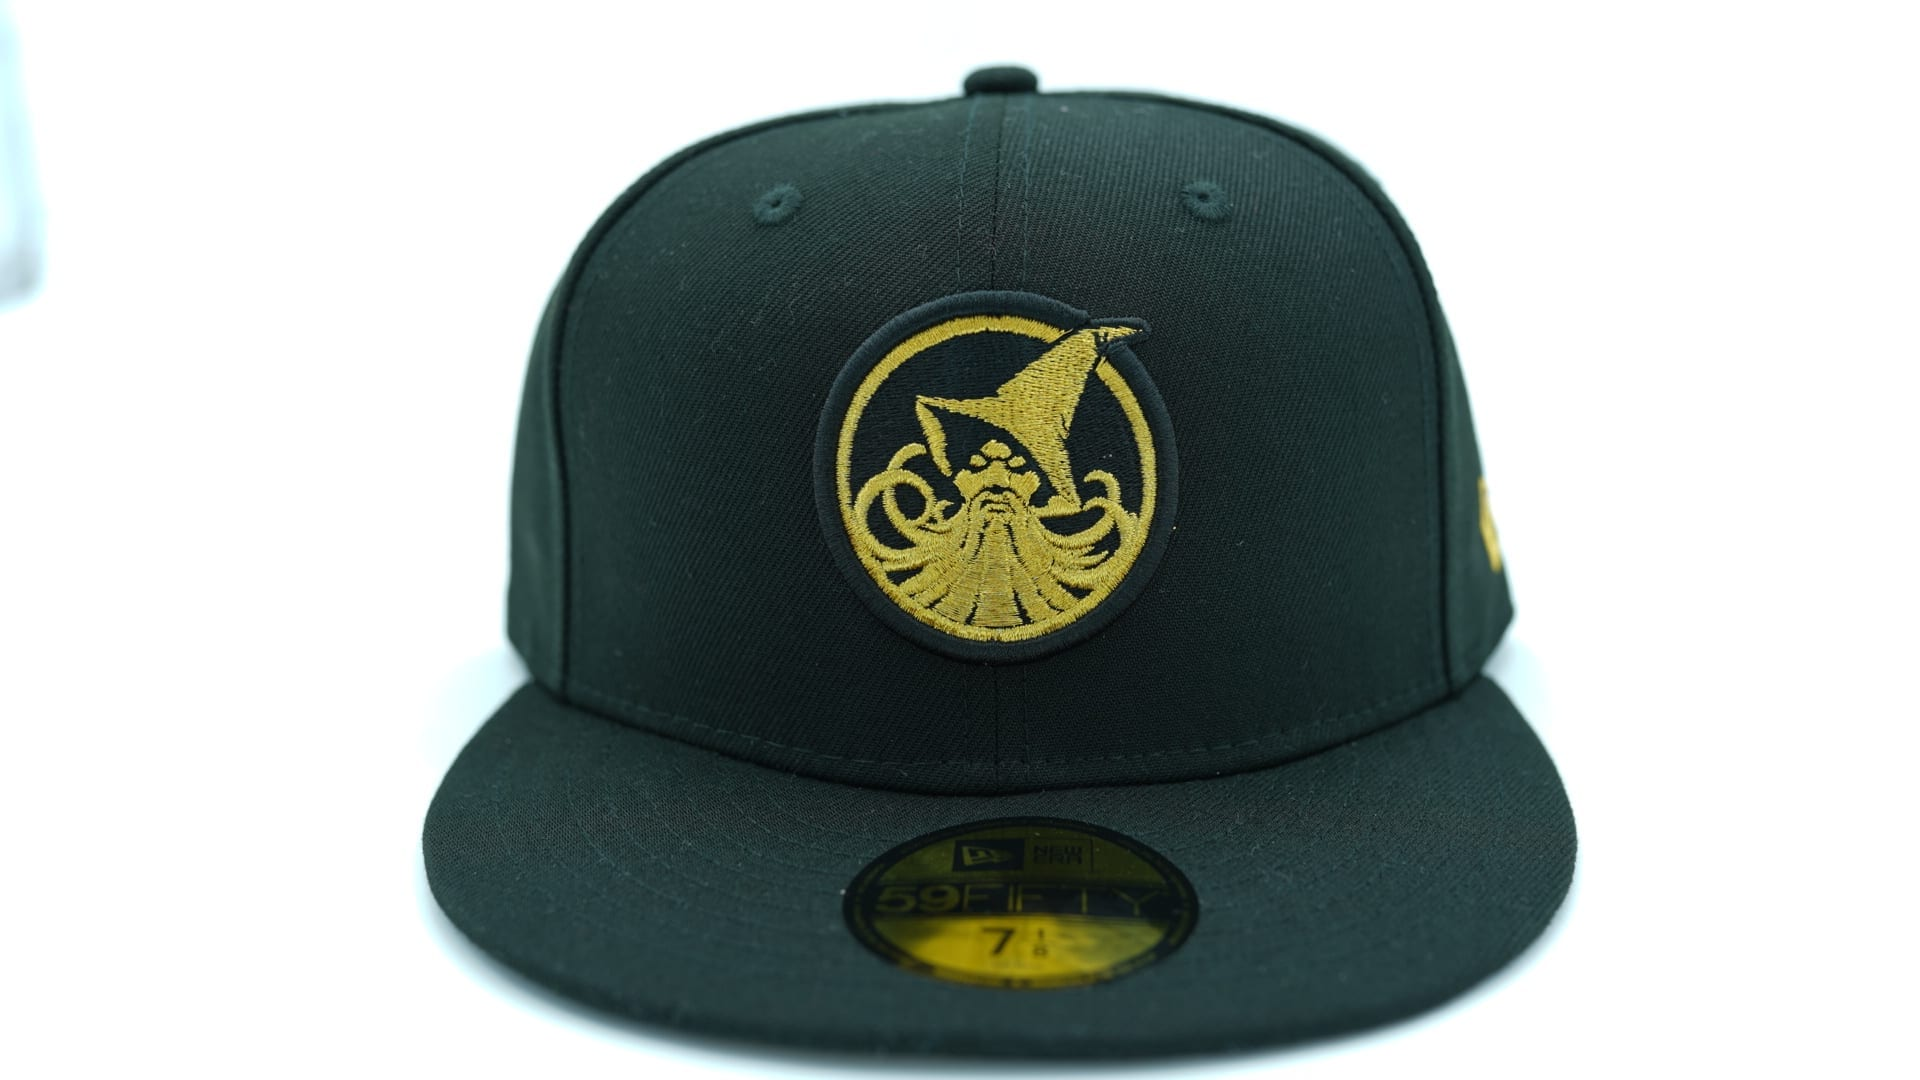 skullcandy-new-era-59Fifty-fitted-baseball-cap-hat